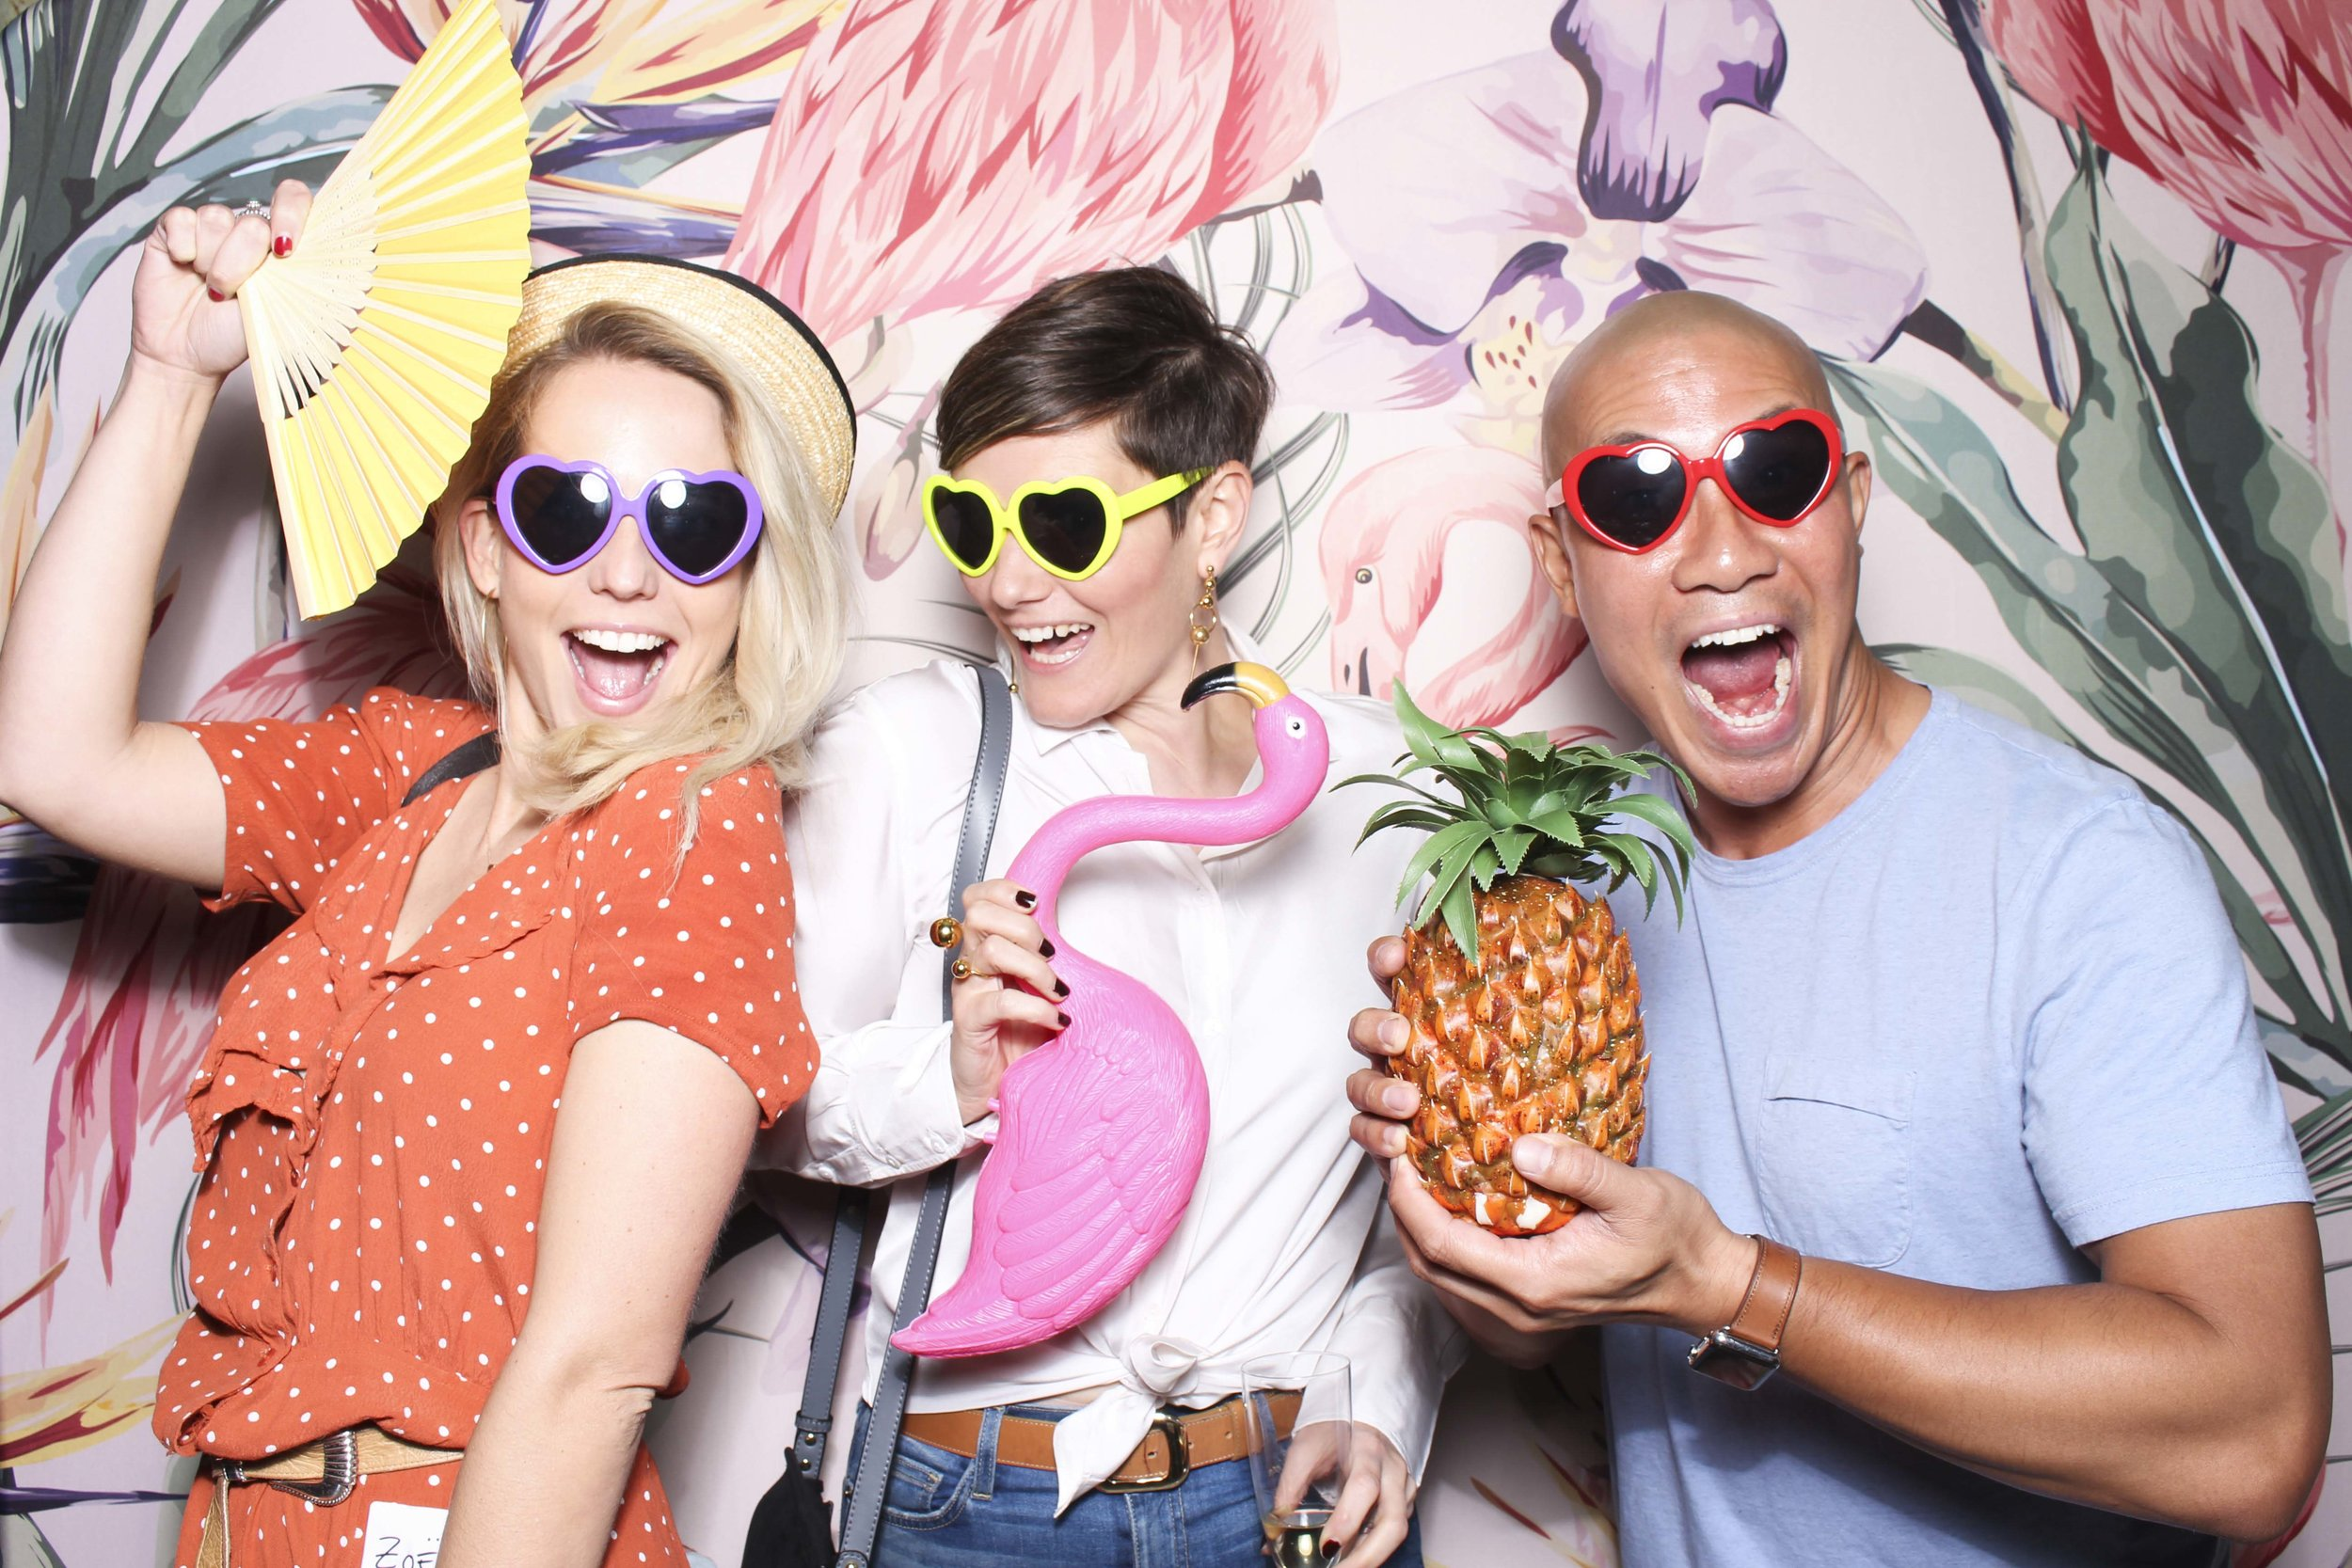 photo booth hire sydney backdrop tropical001.jpg